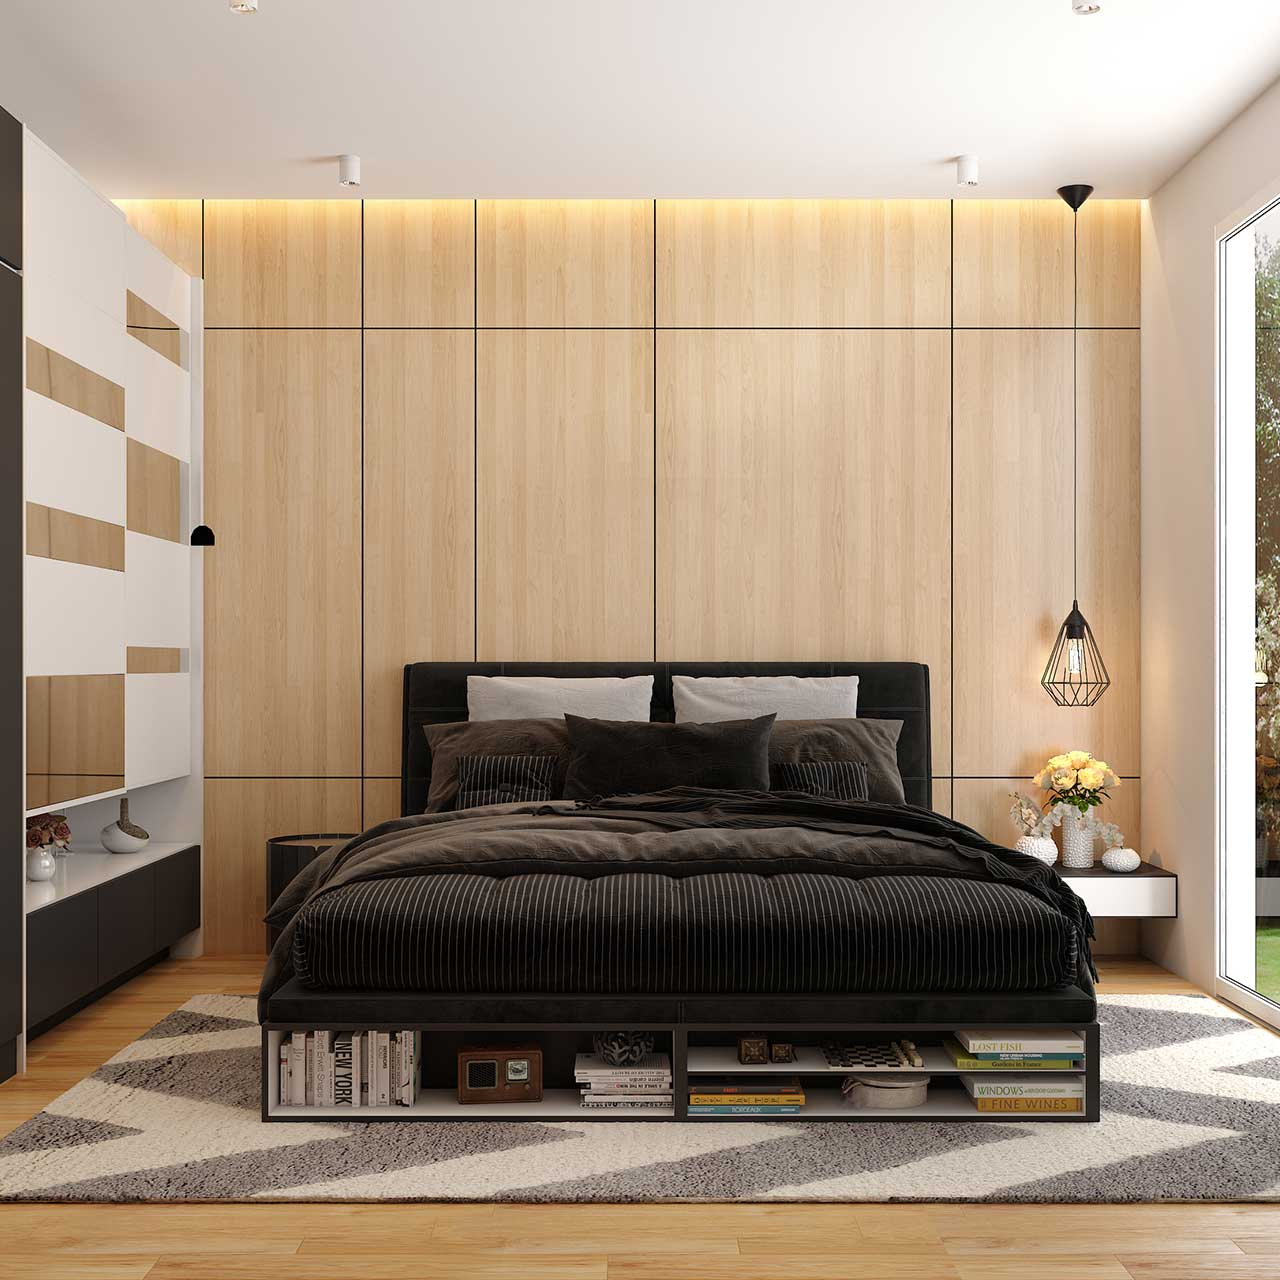 Add Textures with Textiles for Master Bedroom Design